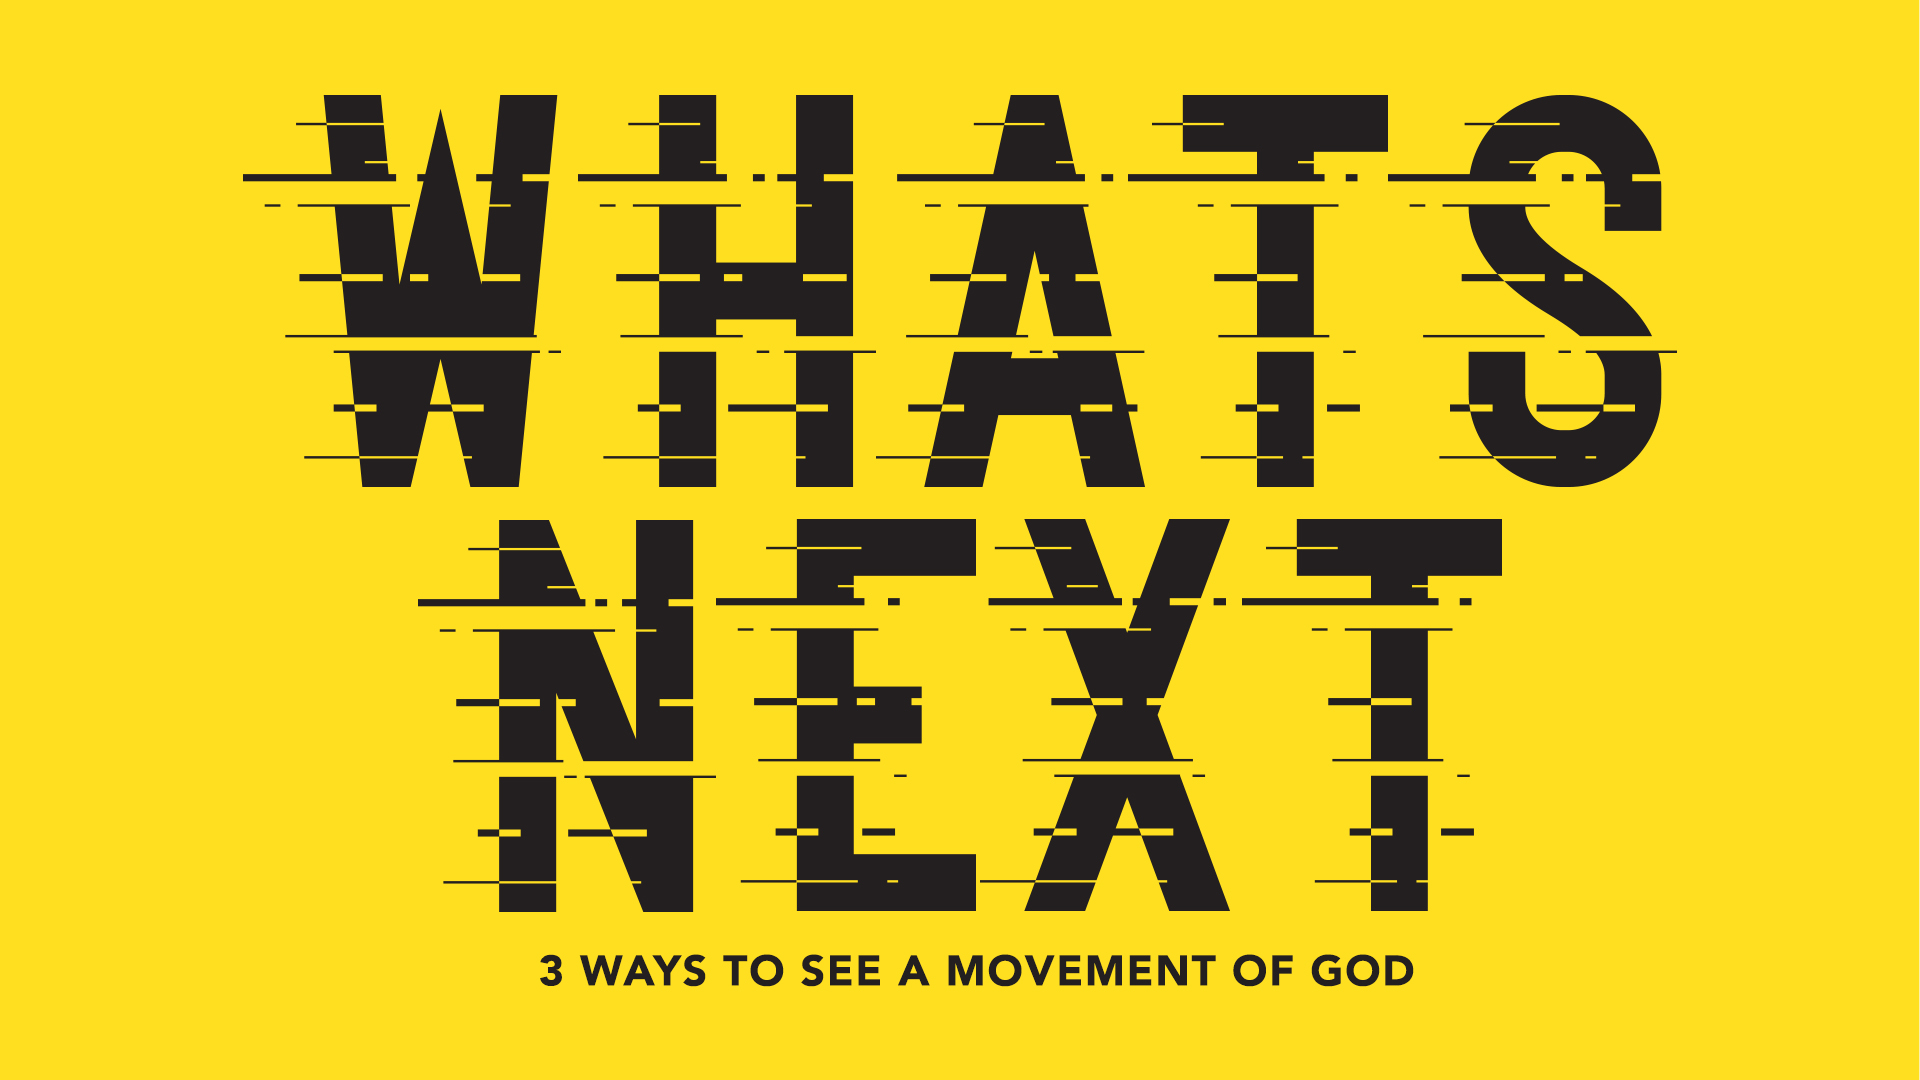 What's Next? Seeing a Movement of God